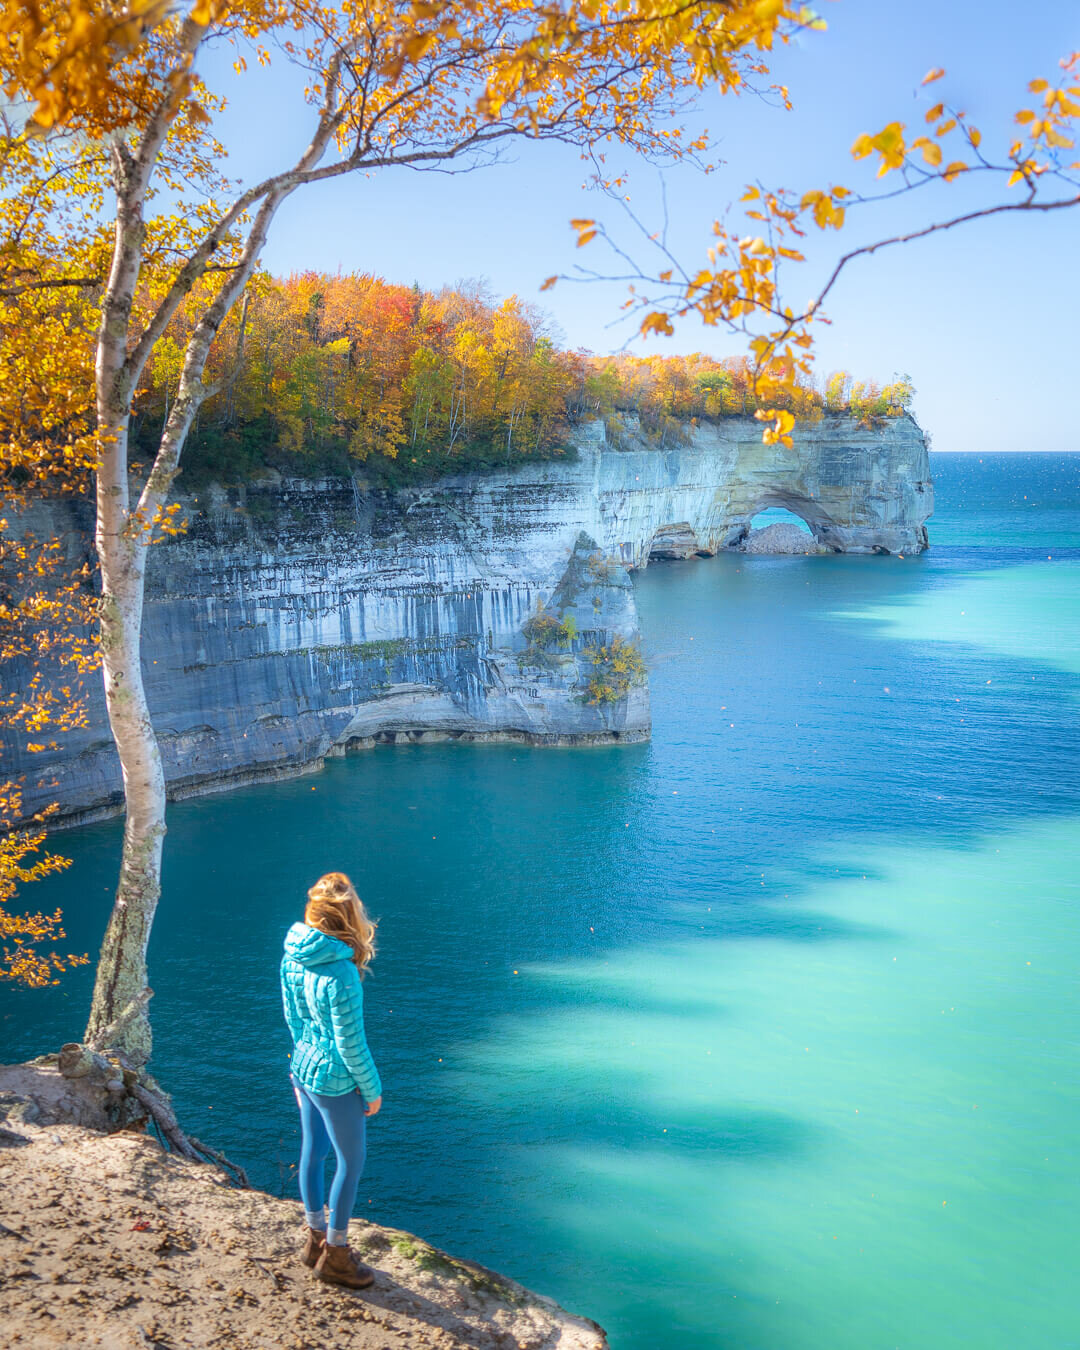 Autumn colors along Pictured Rocks National Lakeshore in Michigan.